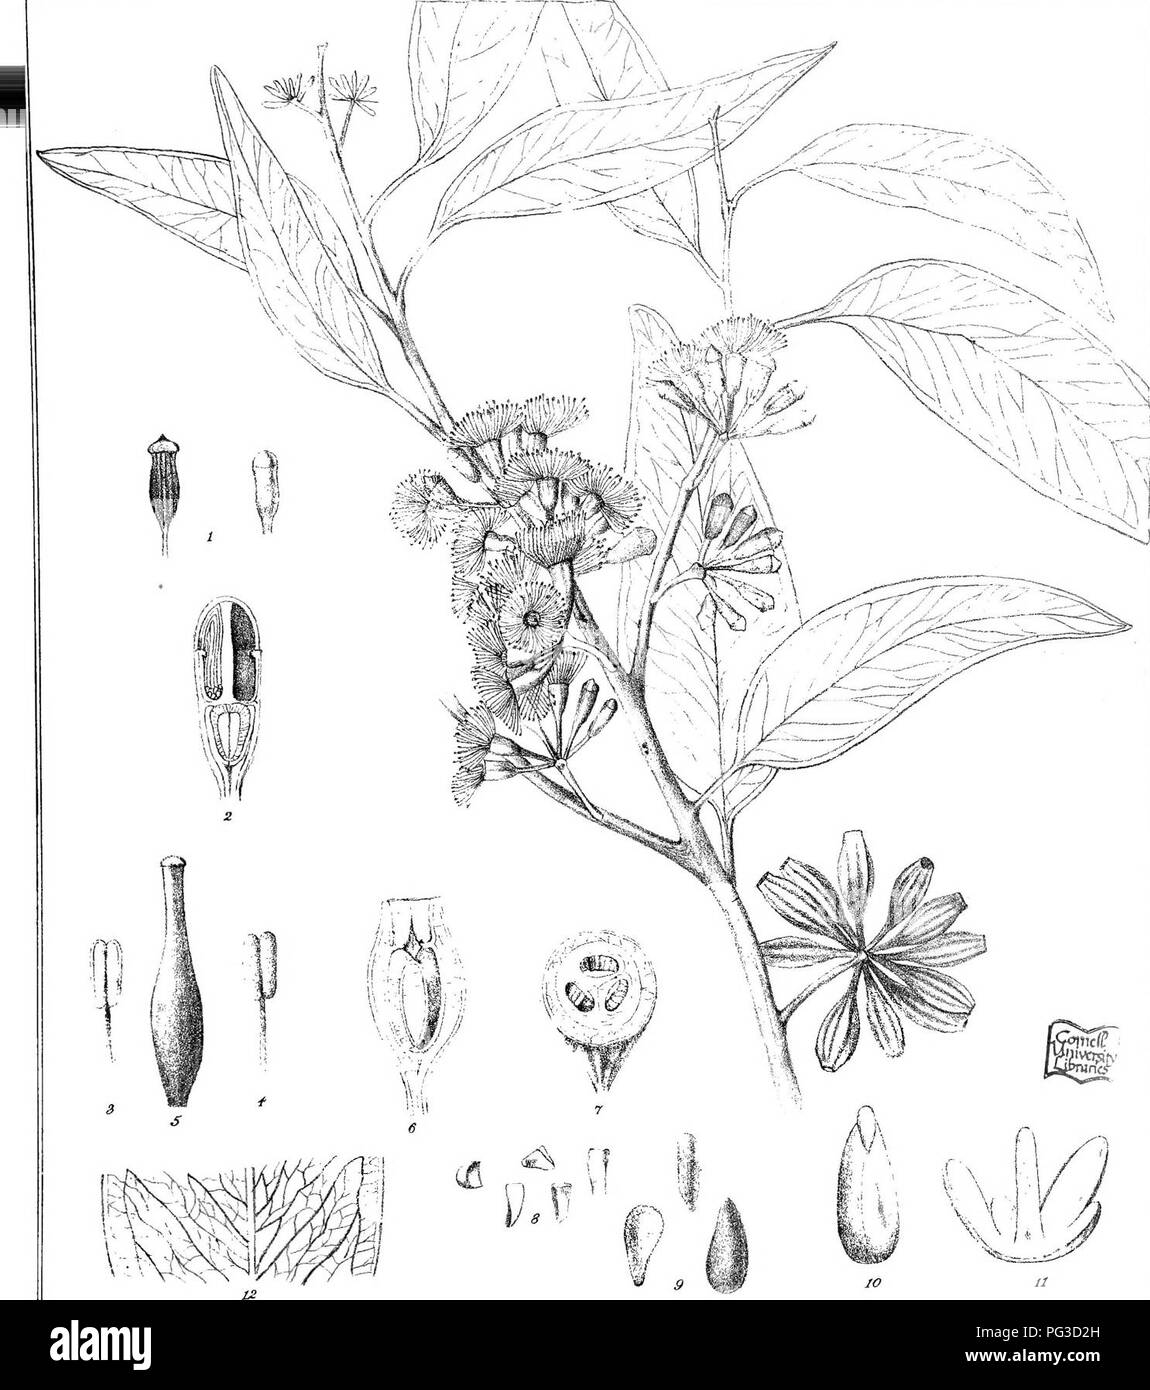 """. Eucalyptographia. A descriptive atlas of the eucalypts of Australia and the adjoining islands;. Eucalyptus; Botany. Rj^usler. d«l. C Troeaa (x C- LilK. P. vM direxil. iKSUlfIptlg S(S)?fKD^HSf^o /"""" Fi/ steam LiXtio Gov. Pririlmg Office Meli.. Please note that these images are extracted from scanned page images that may have been digitally enhanced for readability - coloration and appearance of these illustrations may not perfectly resemble the original work.. Mueller, Ferdinand von, 1825-1896. Melbourne, J. Ferres, Govt. Print; [etc. ,etc. ] - Stock Image"""